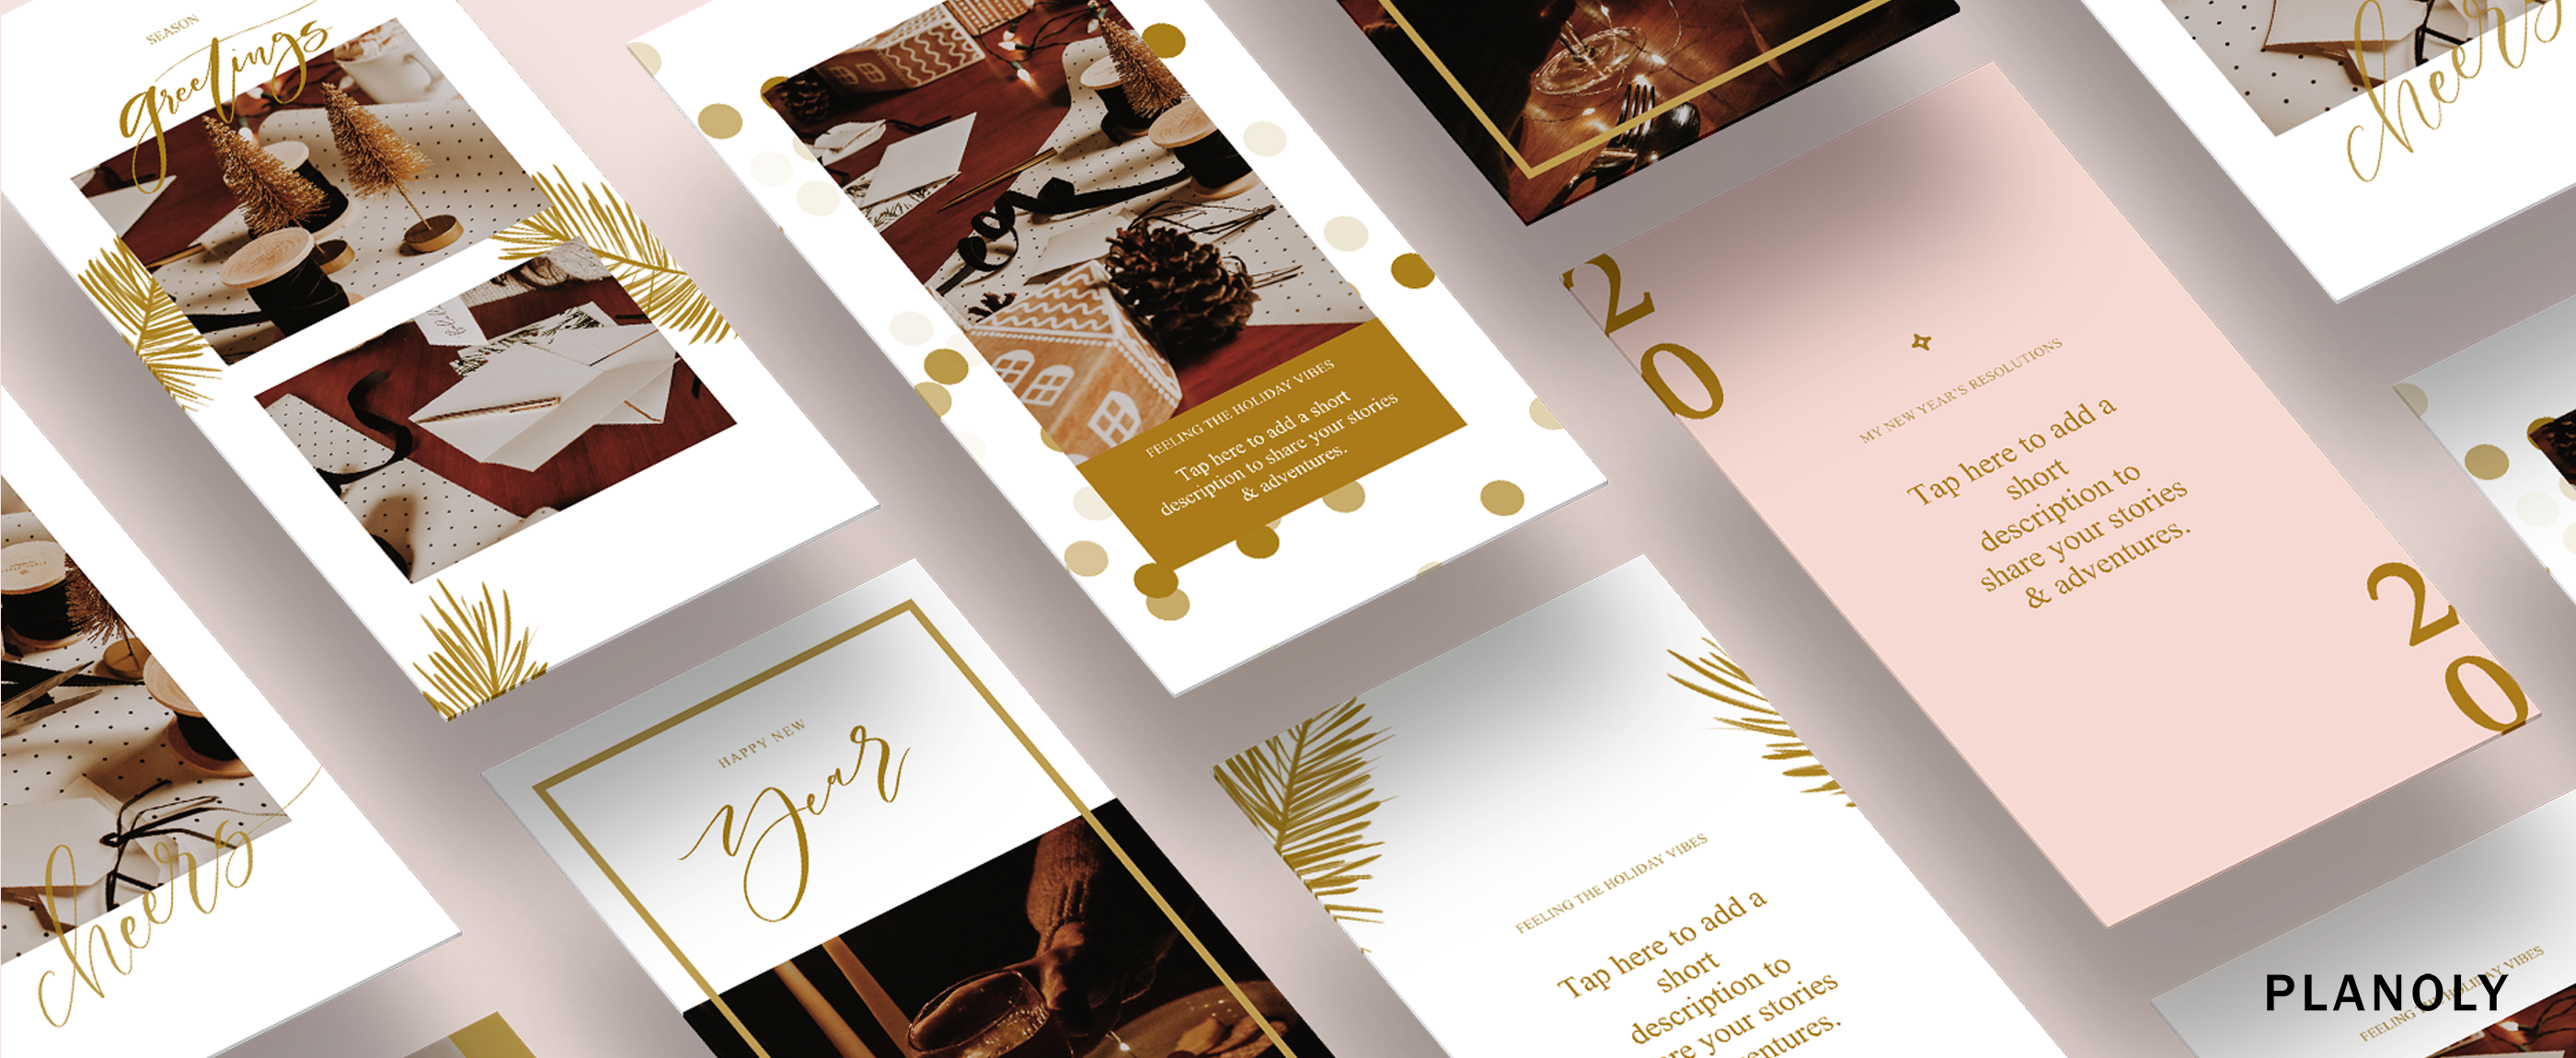 Planoly-Blog-Post-Stories-Edit-Holiday-Collection-Banner-2